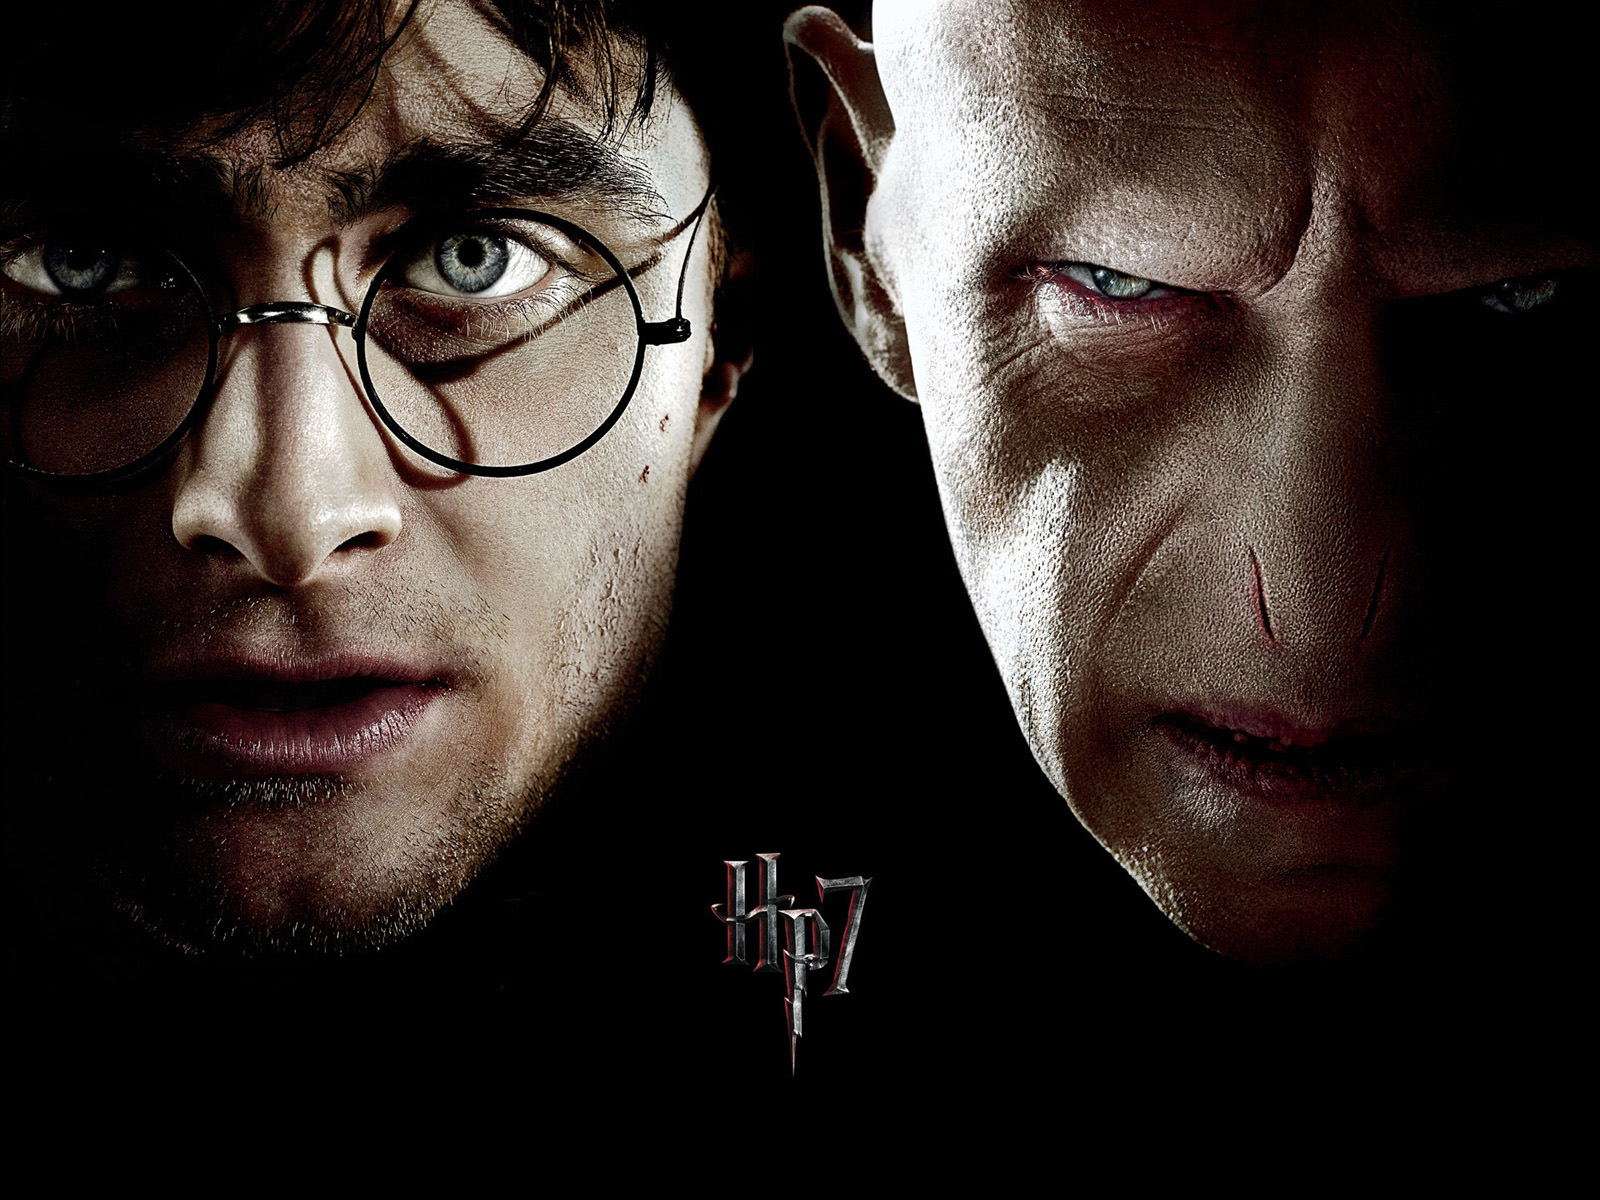 Unless you've been locked up in Azkaban all summer, you'll know that the very last Harry Potter movie opens today. We at Wordnik love the JK Rowling series, ...